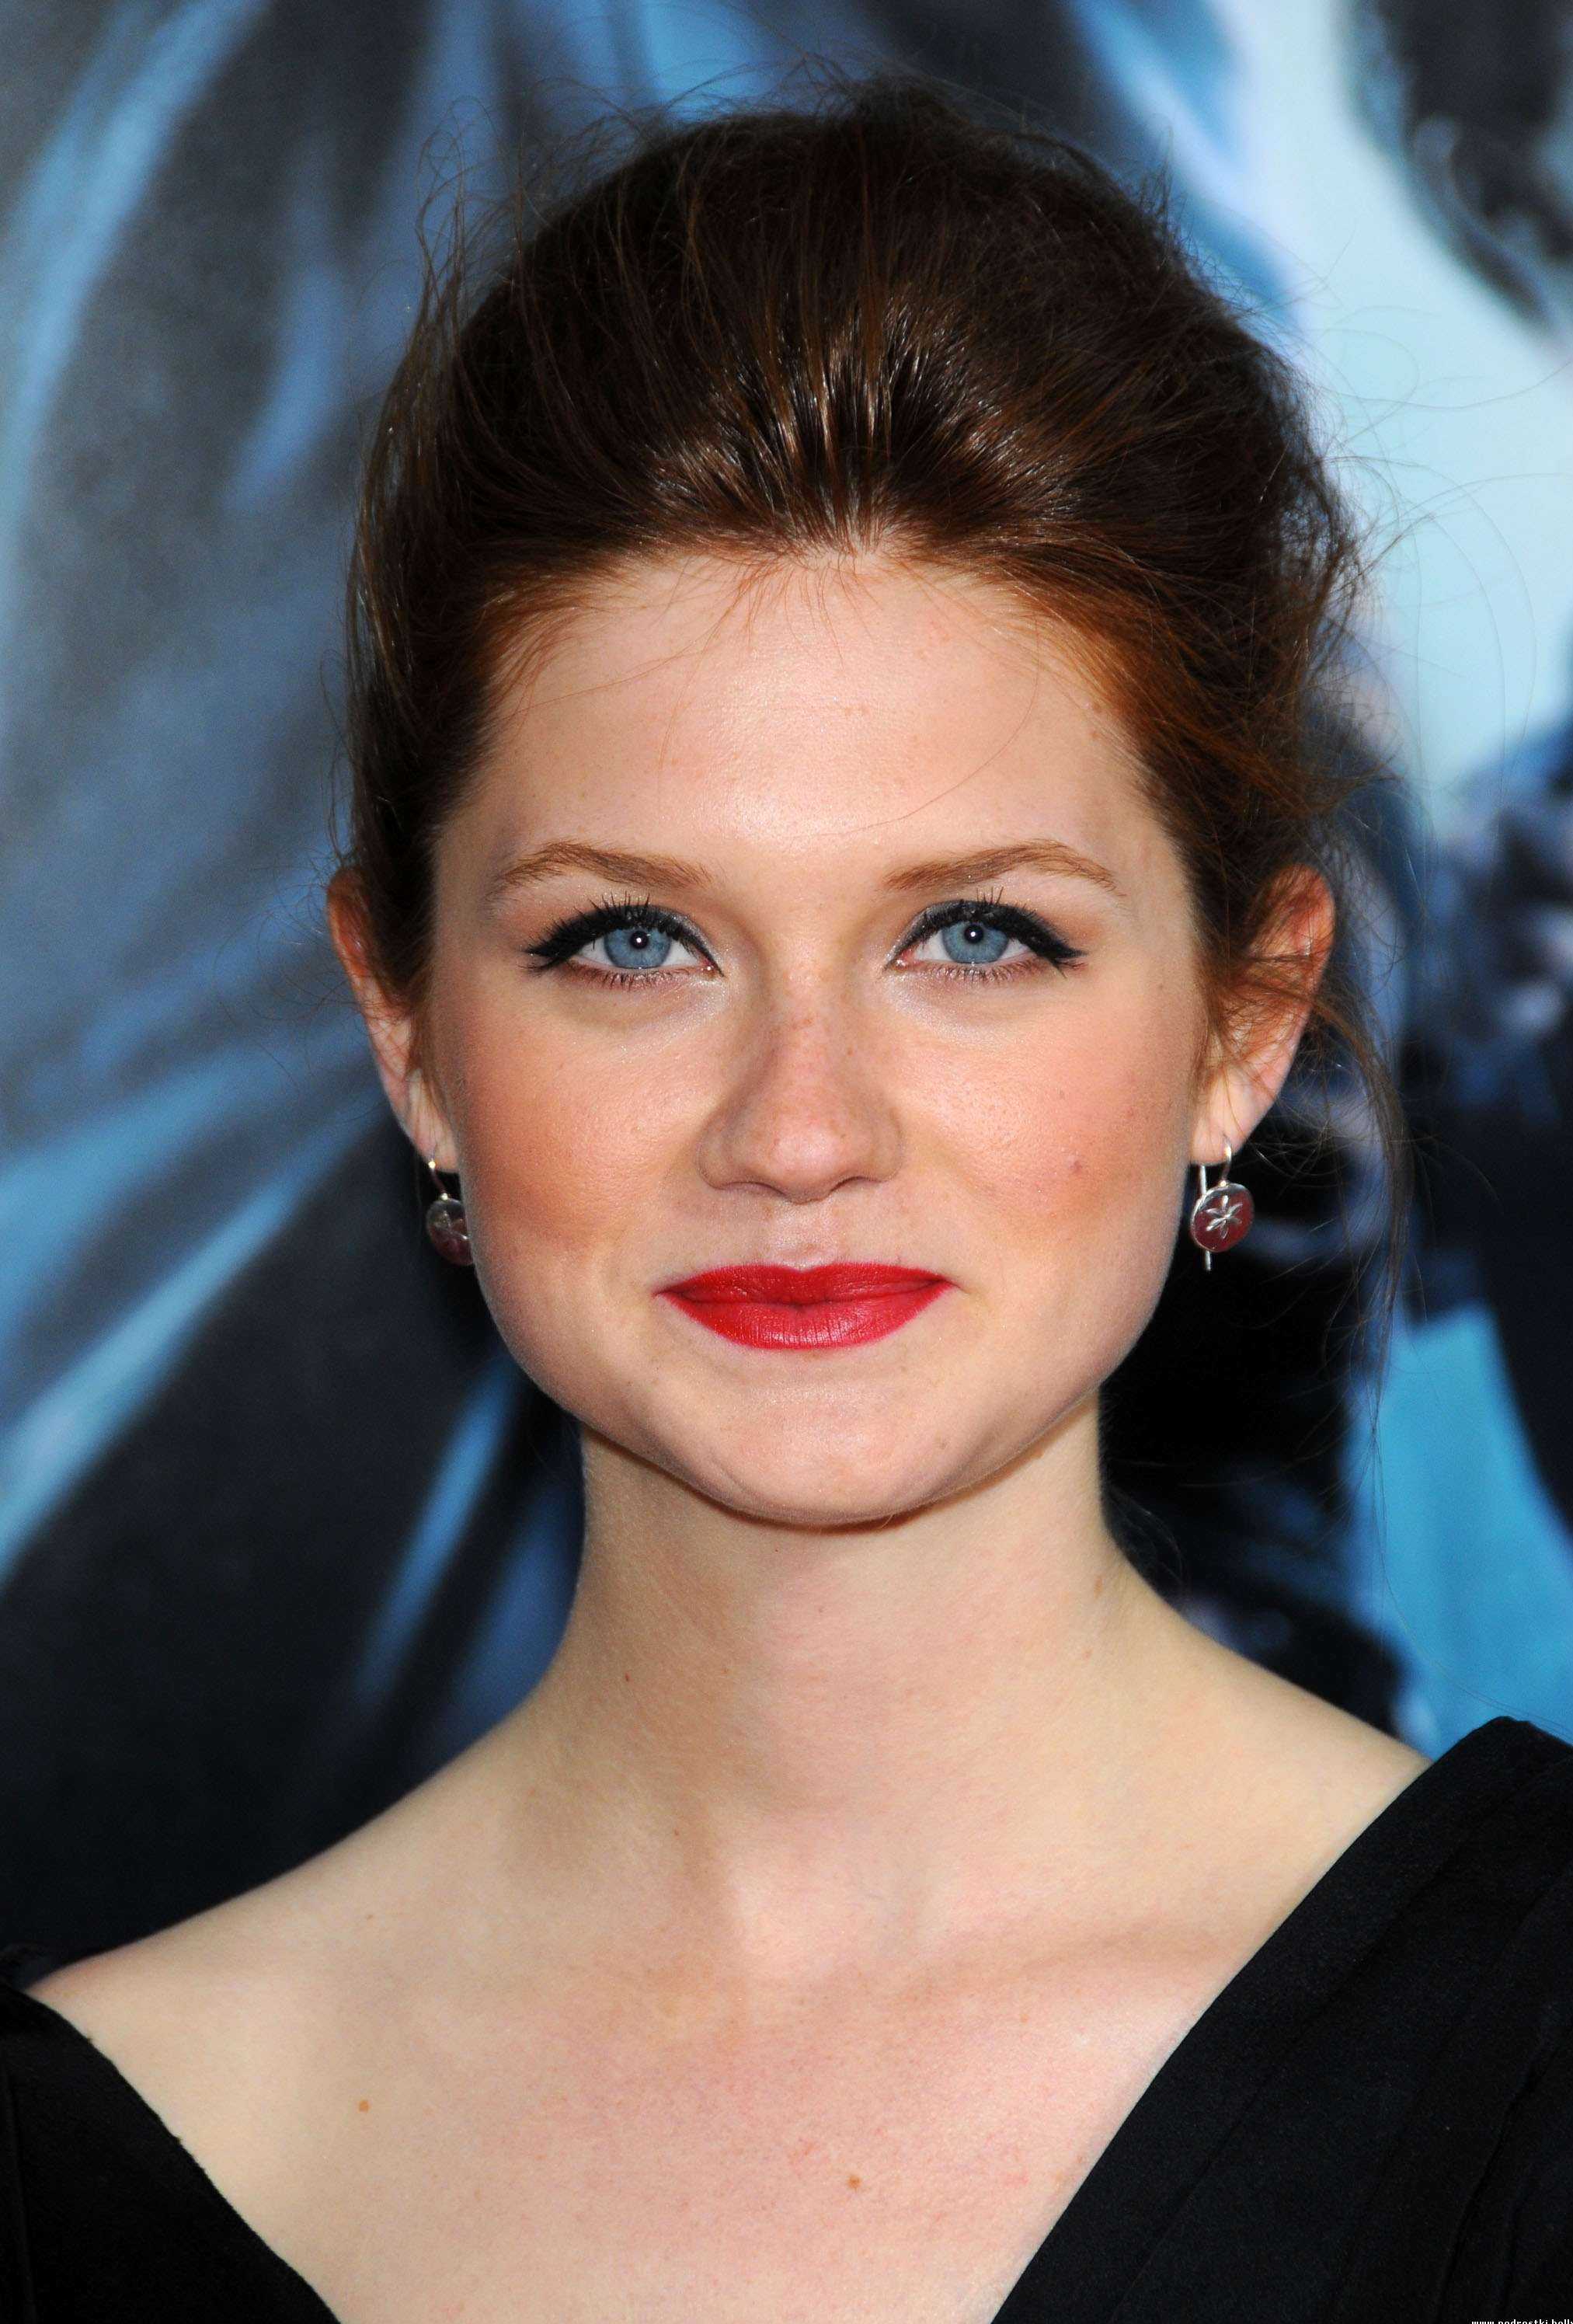 Amy Grant Vince Gill: Bonnie Wright Photo 137 Of 170 Pics, Wallpaper